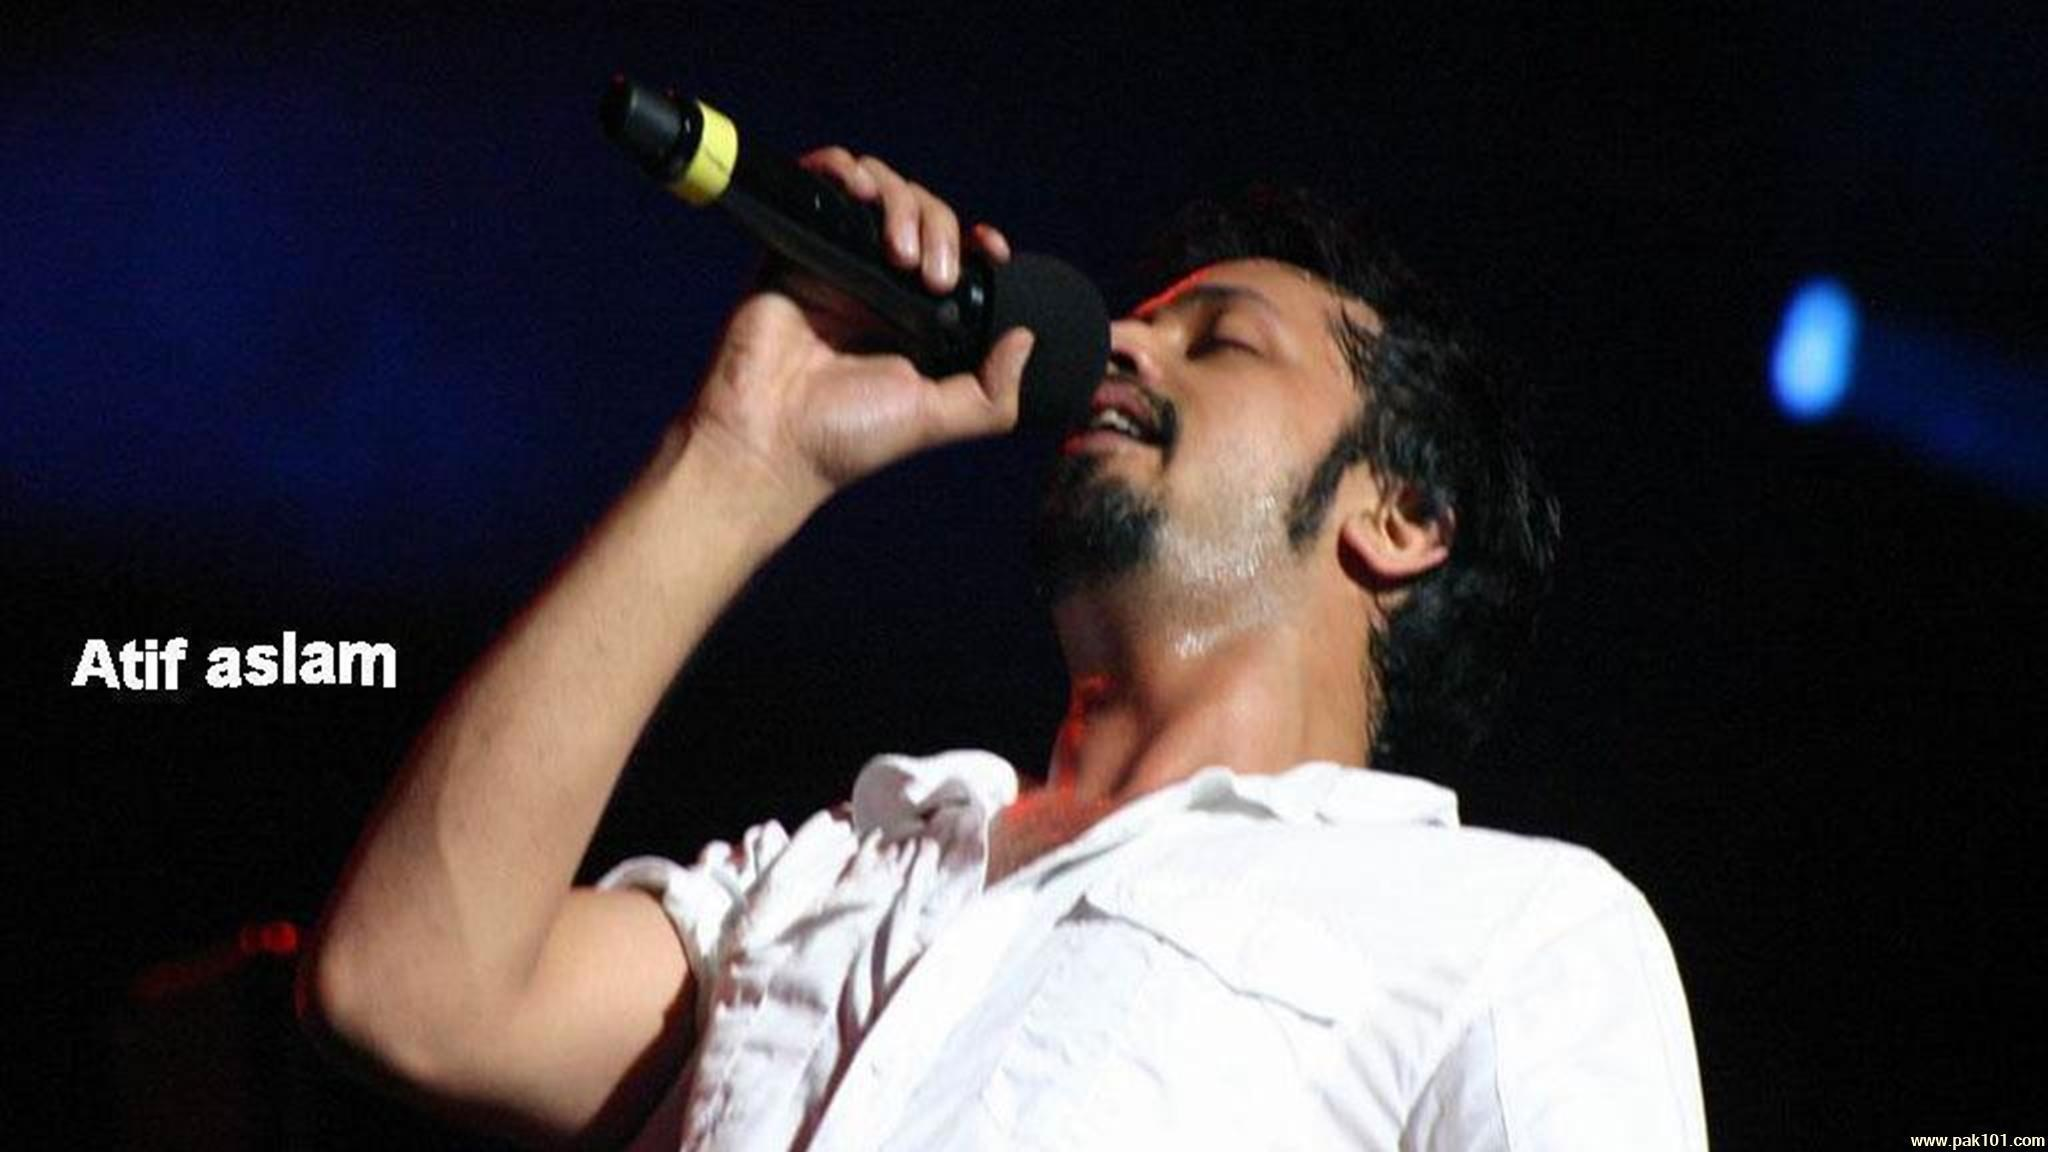 atif-aslam-image-1080p-high-quality-Qiana-Blare-x-wallpaper-wp3402655